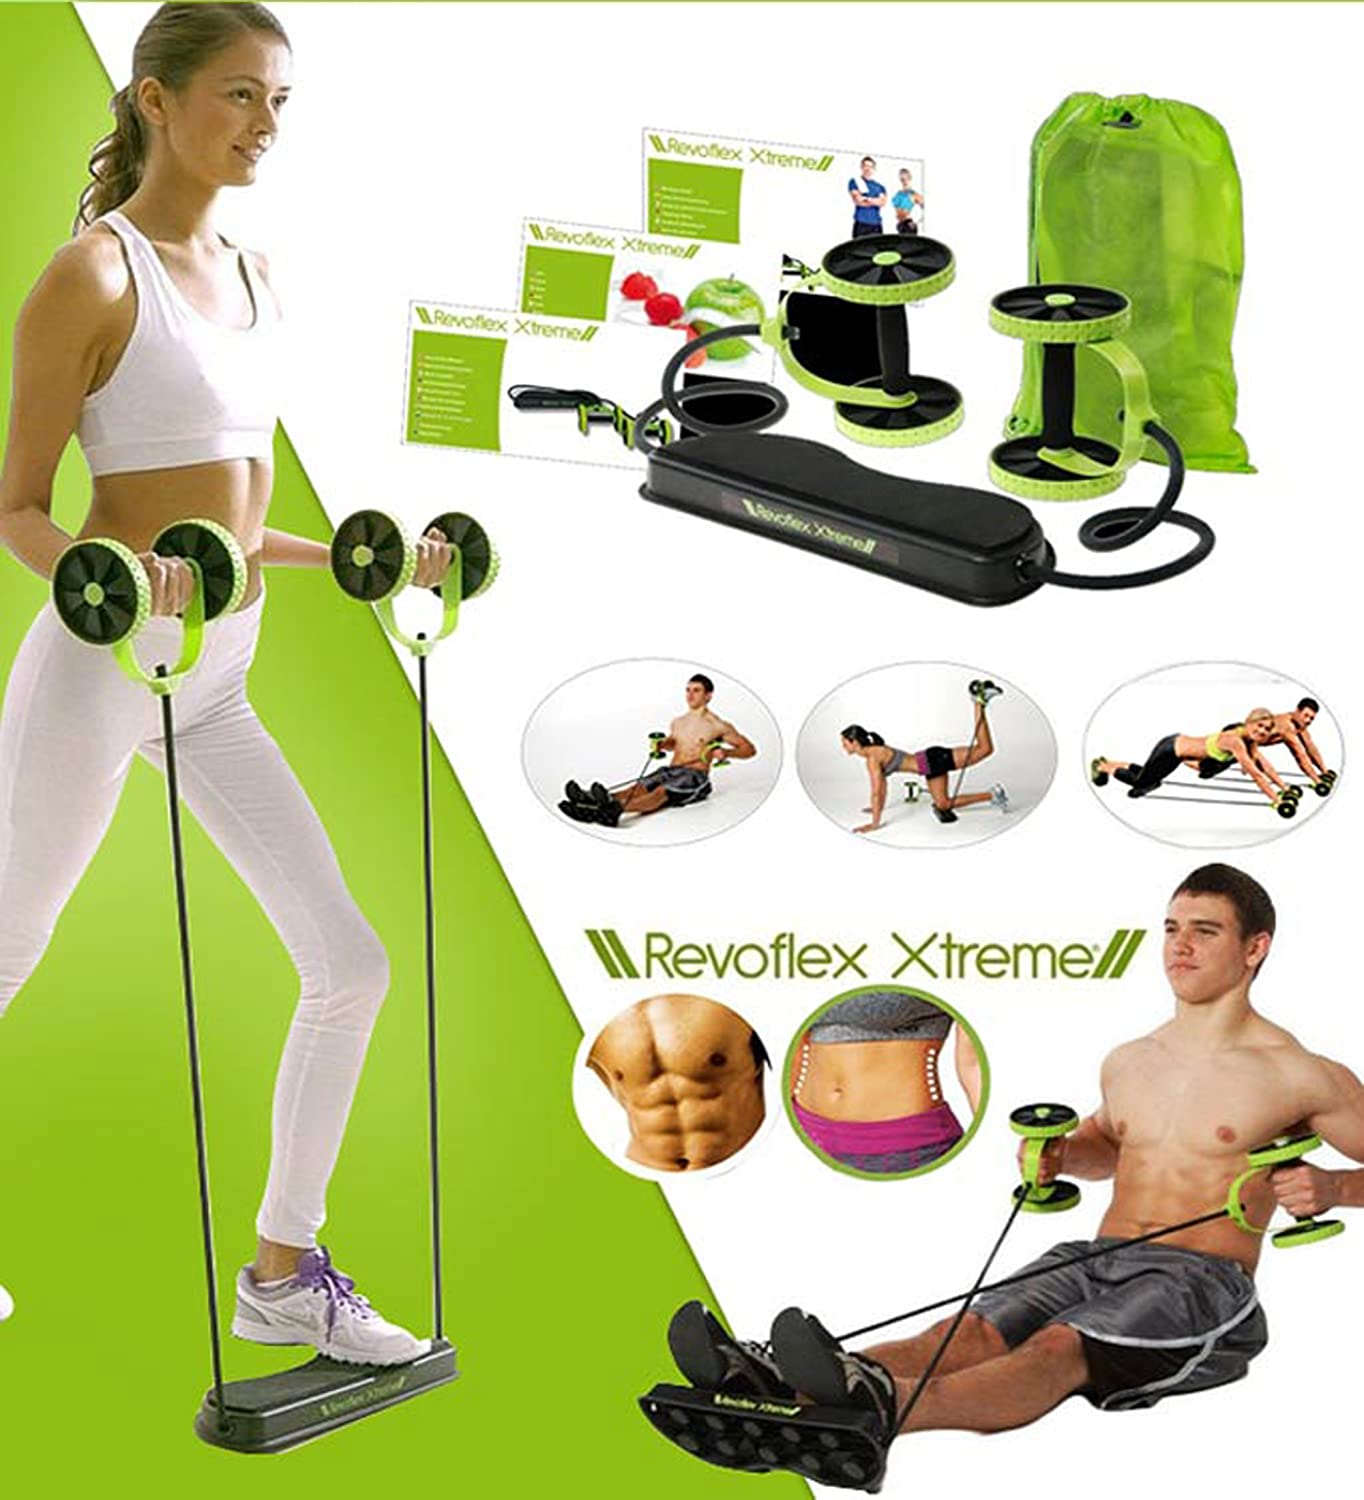 Abs Carver Ab-Roller Dual Wheel Trainer Pro Abdominal /& Stomach Exercise Training Fitness Equipment Core Waist Line Strength Shredder Home Gym Workout Machine with 5 Mode Training